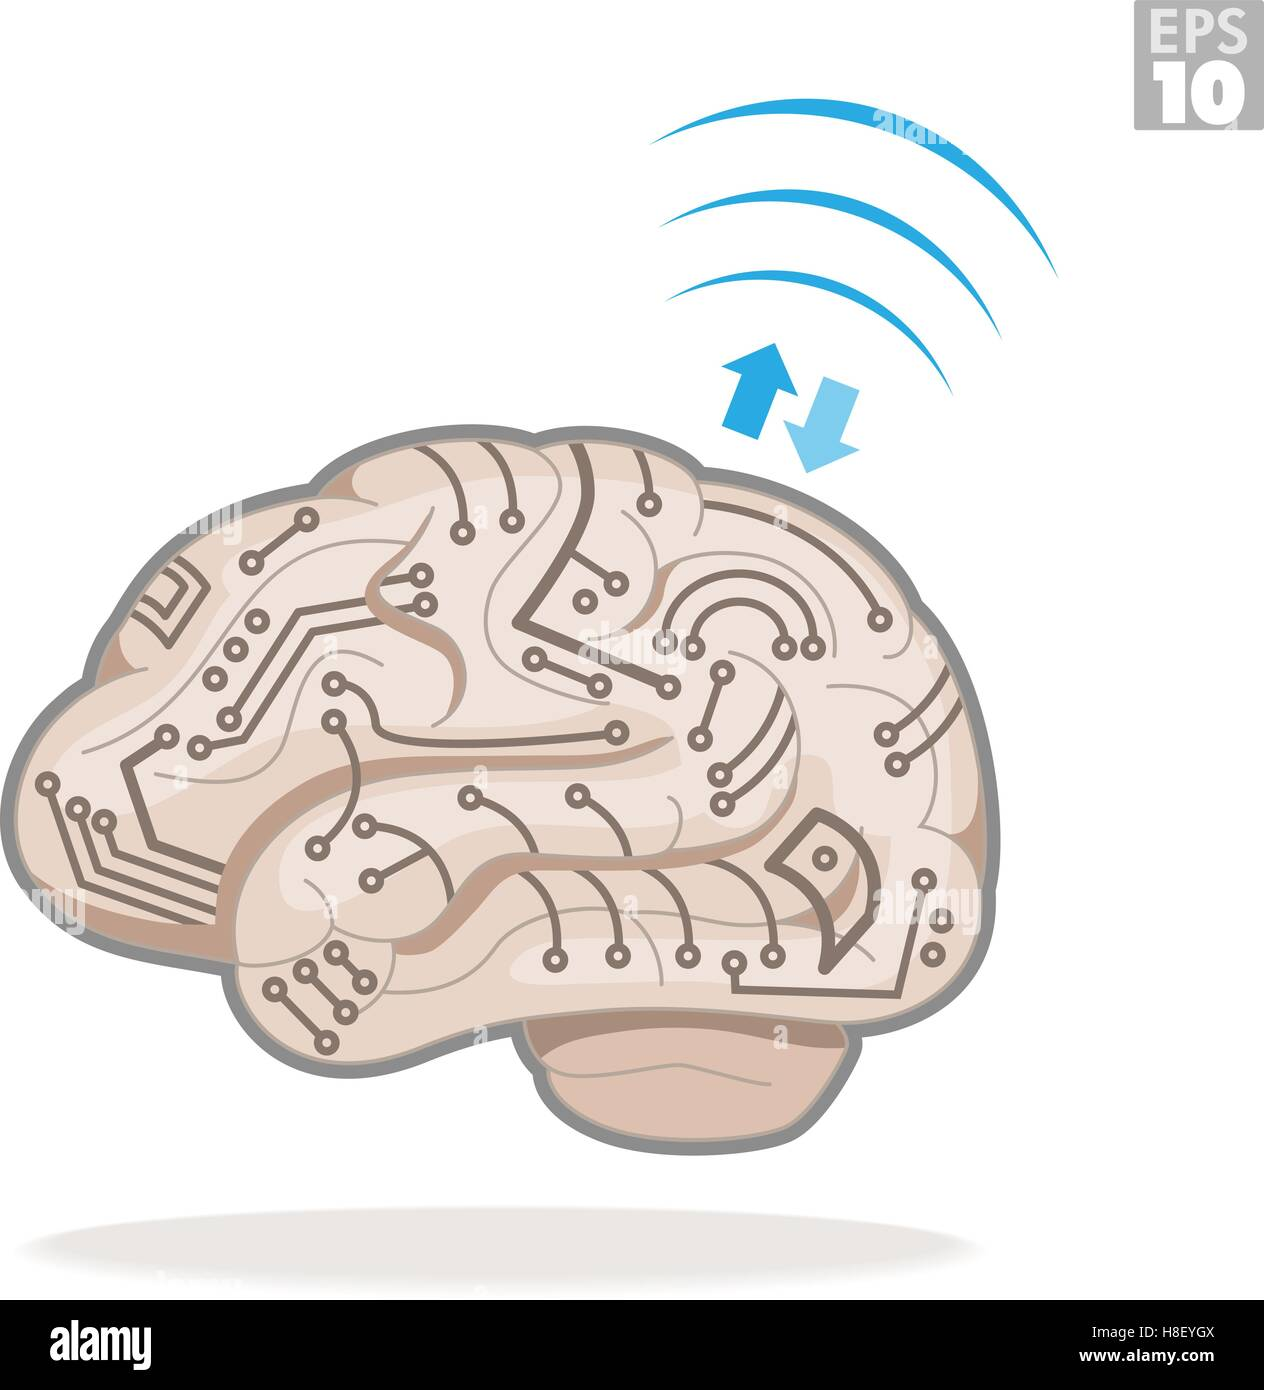 Electronic Vectors Stock Photos Images Circuitry Of An Calculator Royalty Free Photography Human Brain With Circuits Processing Information Image